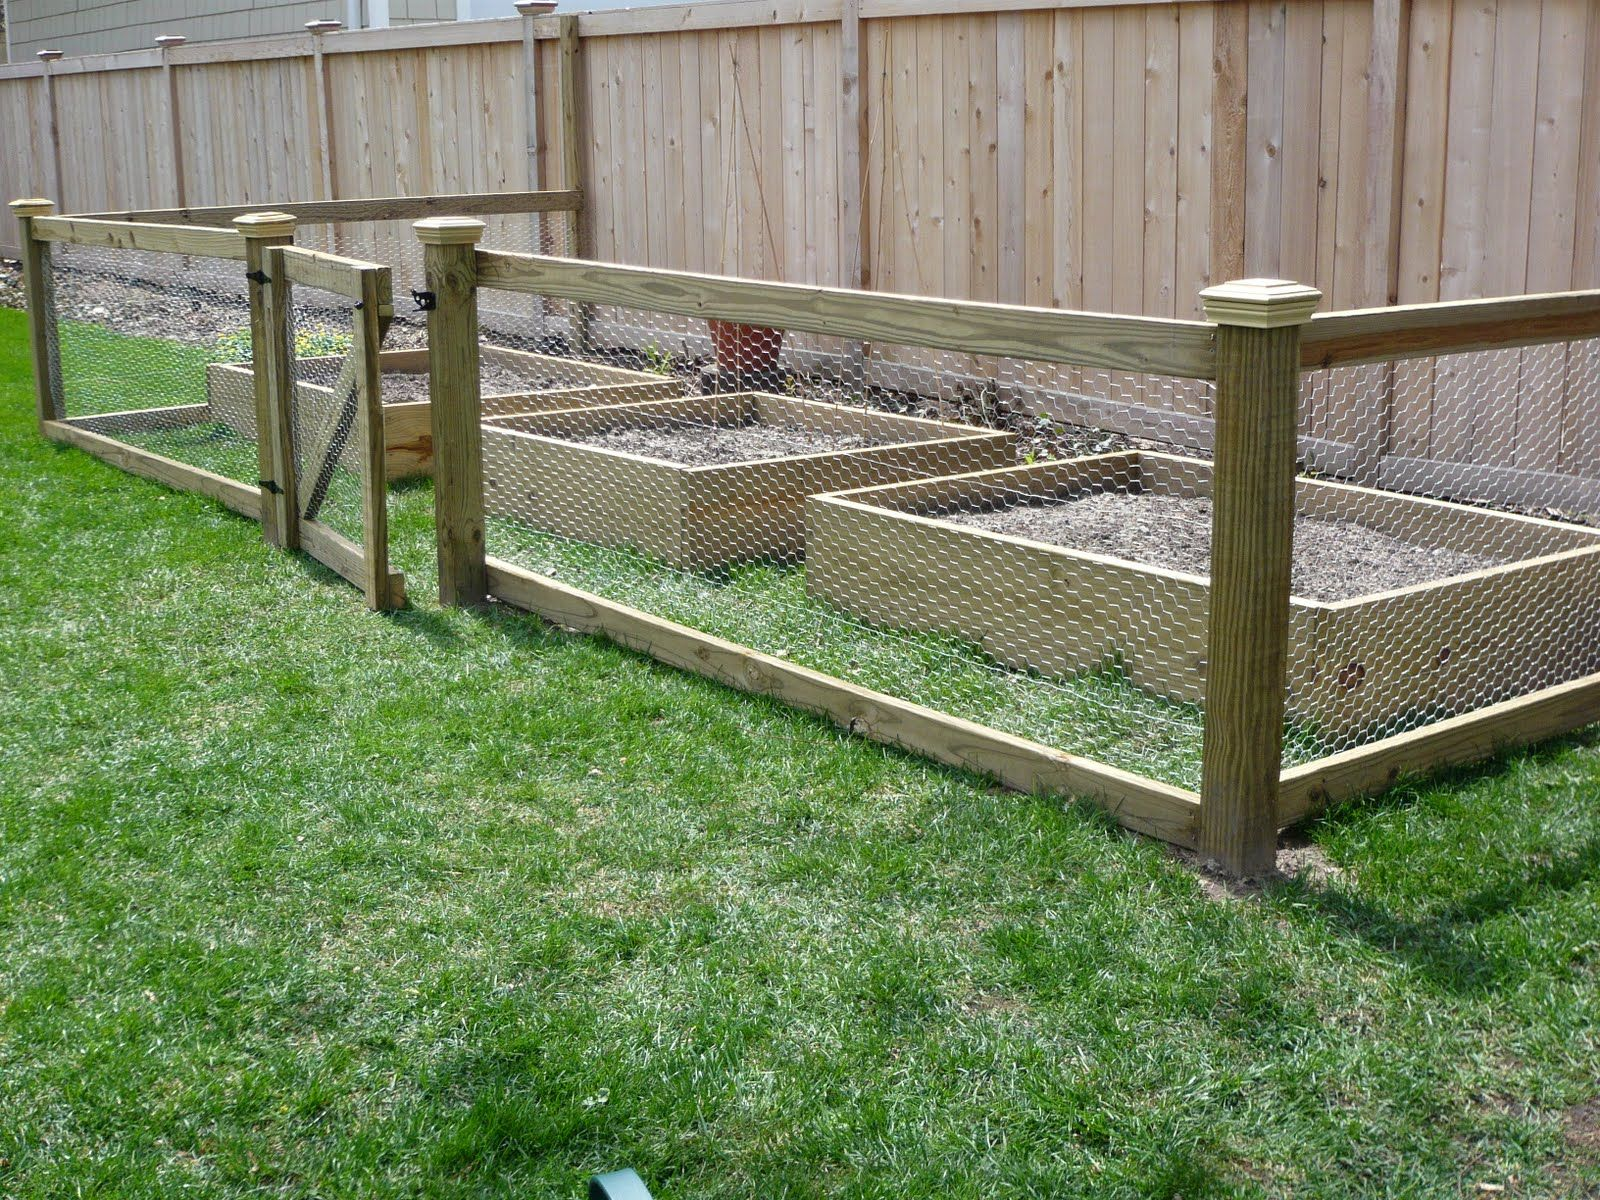 Things to know about vegetable garden fence chicken